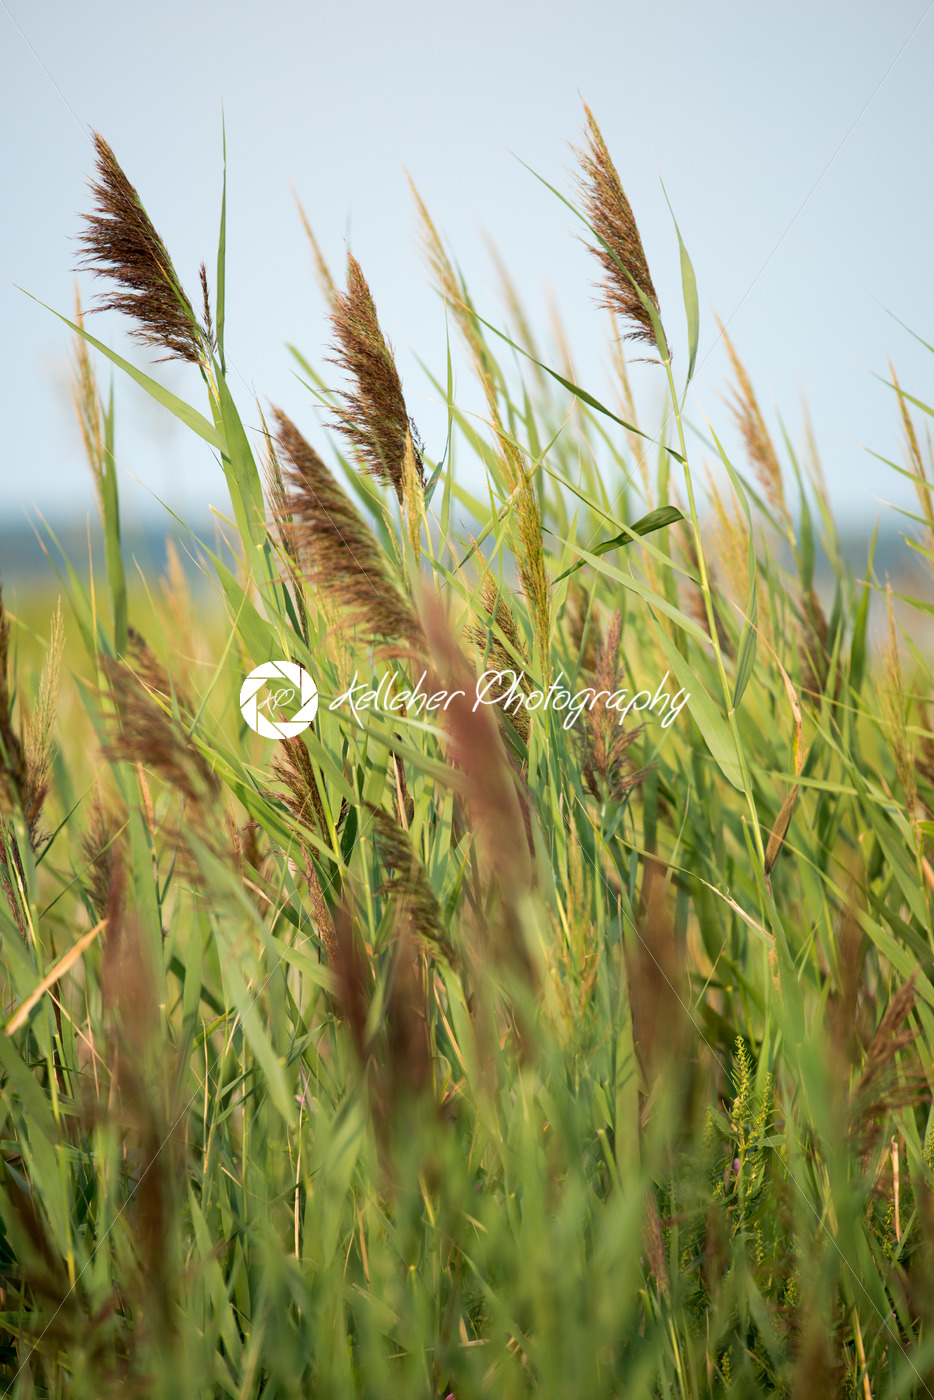 Thickets of reeds on Maryland Eastern Shore near Rock Hall, MD - Kelleher Photography Store